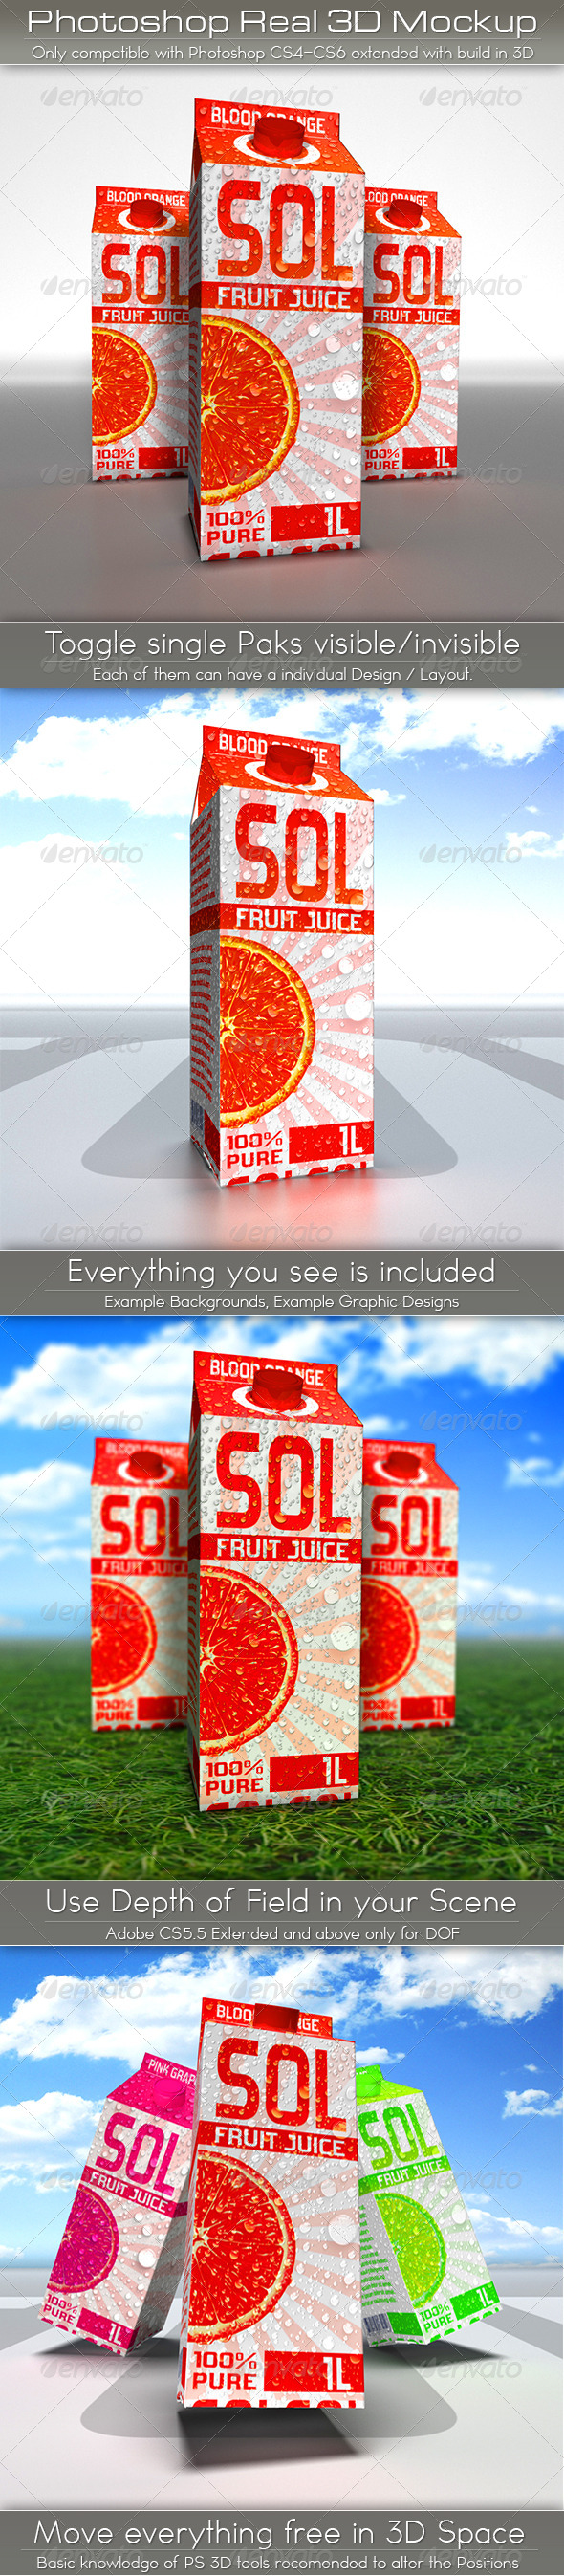 Large Juice or Milk Carton Pack Mockup | 3D Photoshop - Food and Drink Packaging